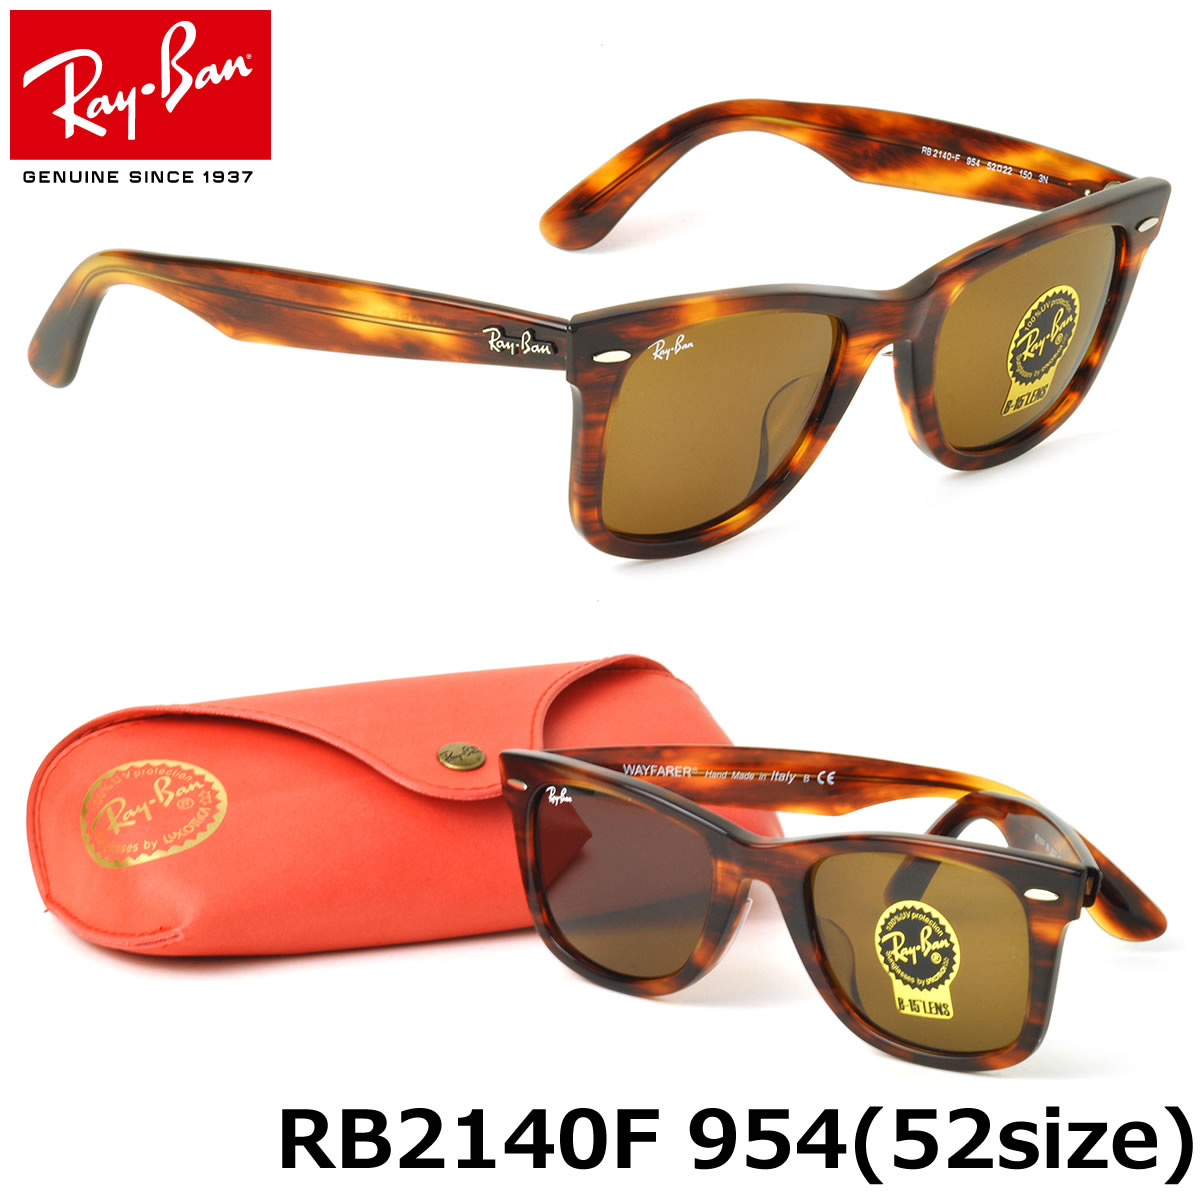 4bc766c5d1 Ray-Ban Sunglasses RB2140F 954 52size WAYFARER FULL FIT (for Asian) GENUINE  NEW rayban ray ban